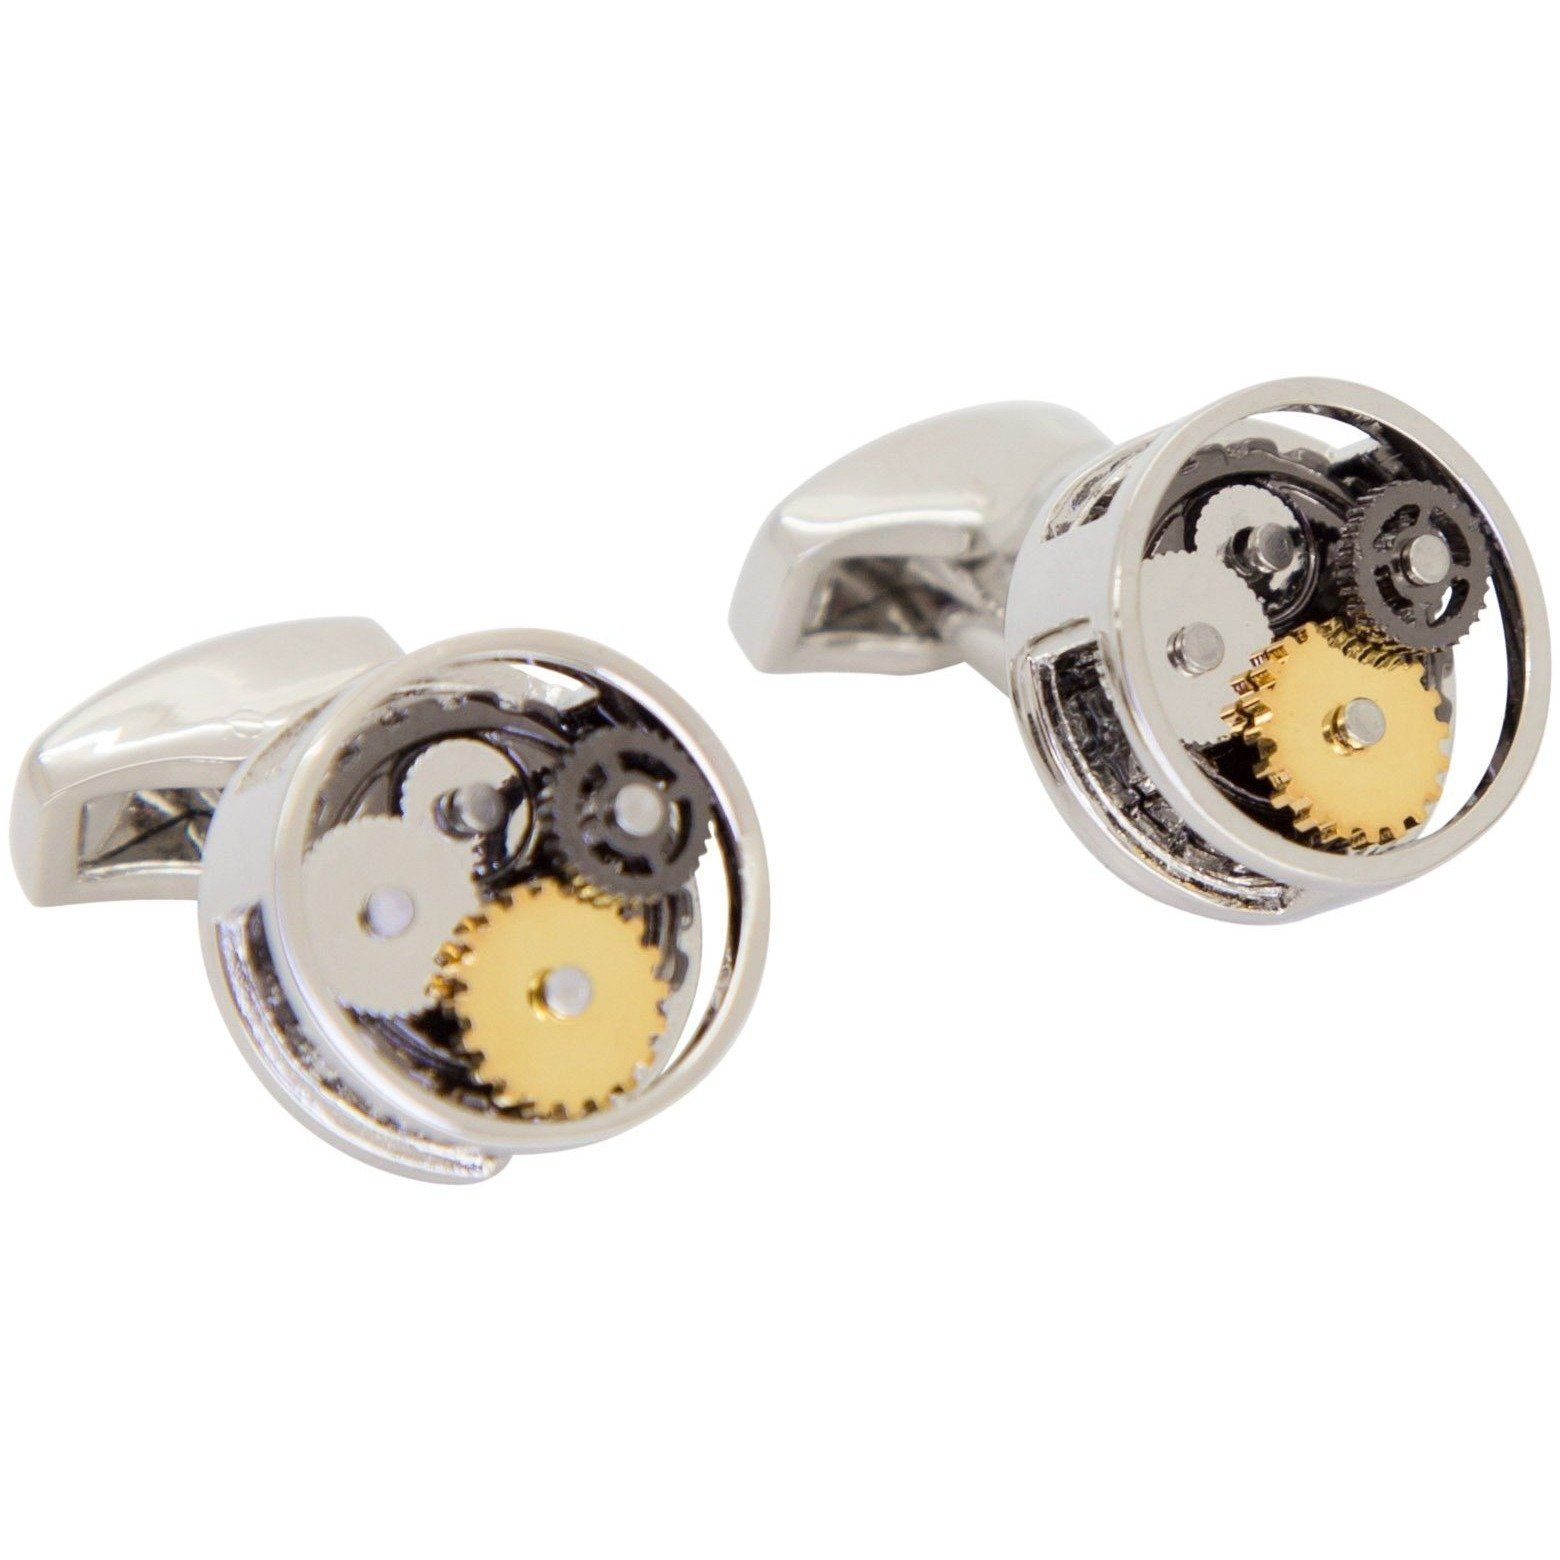 Steampunk Gear Cufflinks in Round Silver, Novelty Cufflinks, Cuffed.com.au, CL5572, $49.00